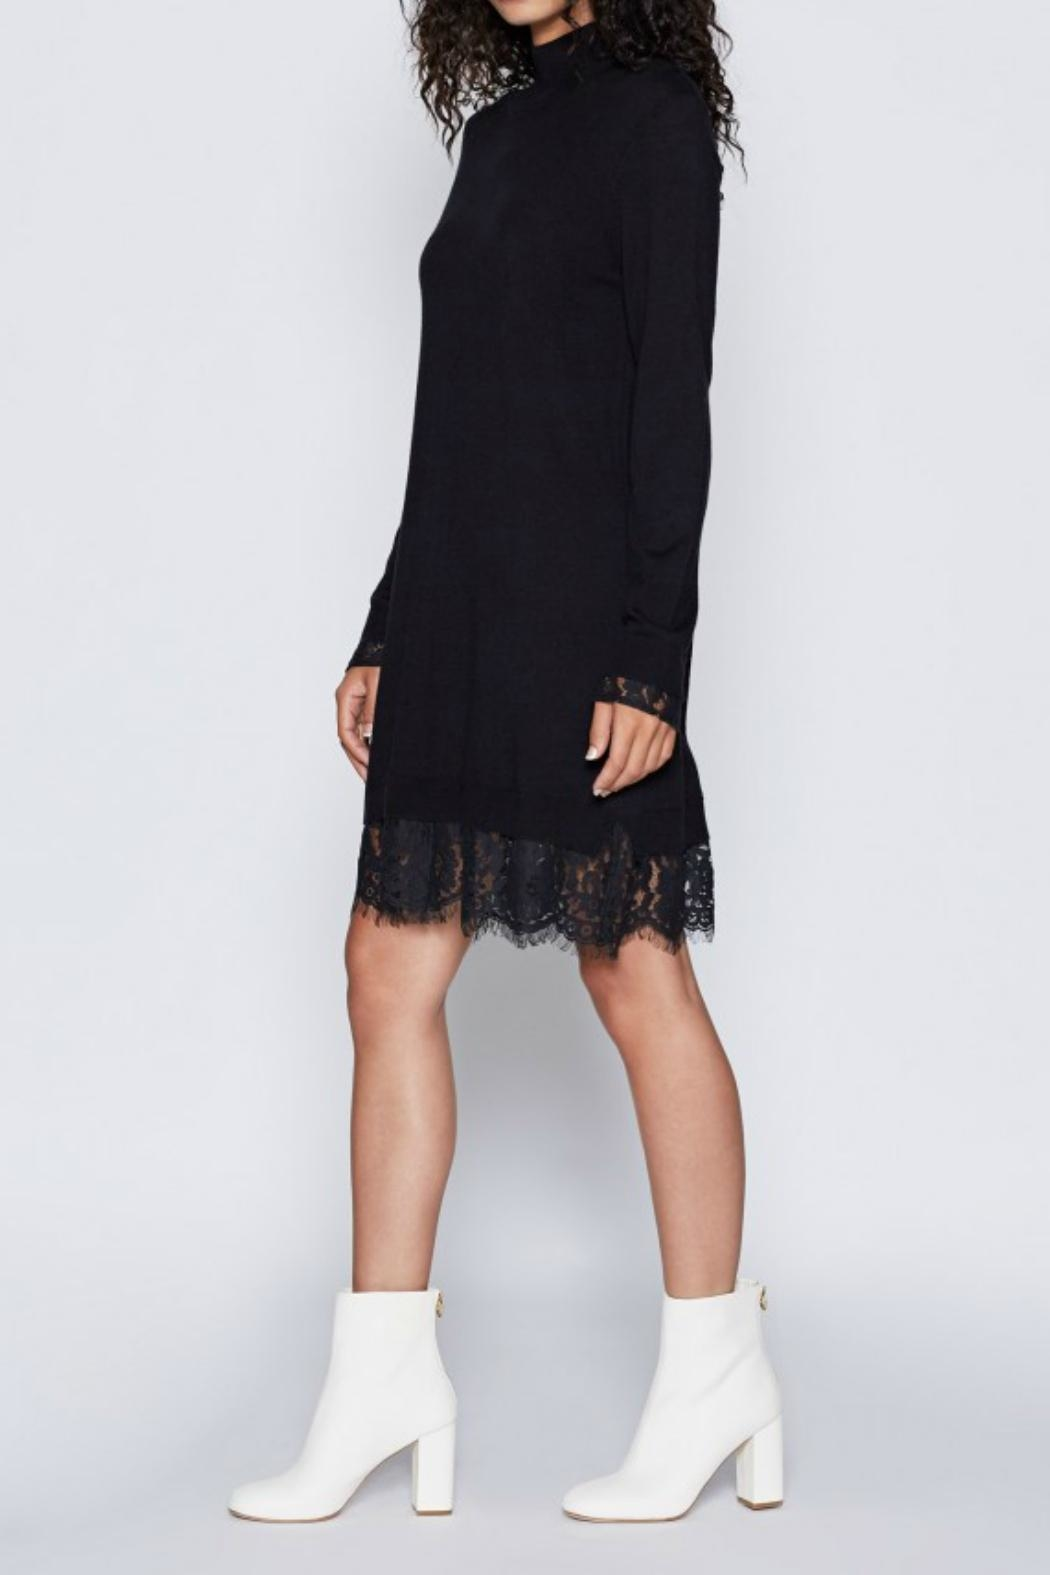 Joie Fredrika Sweater Dress - Front Full Image